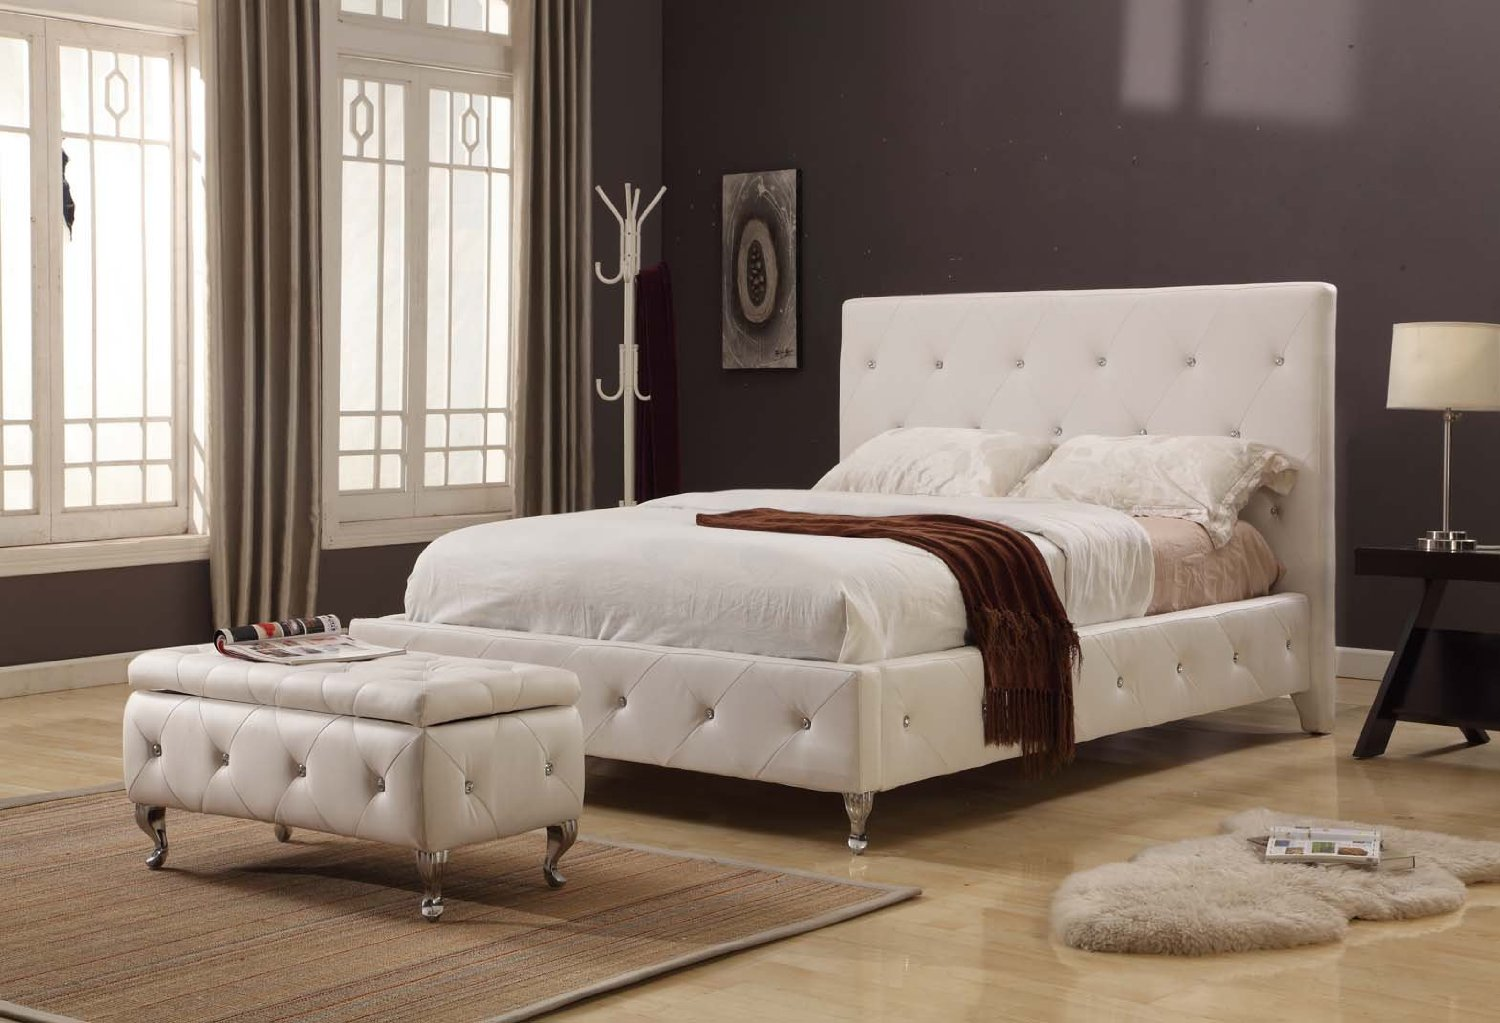 Mesmerizing Queen Size Platform Bed for Bedroom: Ottoman With Pouf Queen Size Platform Bed